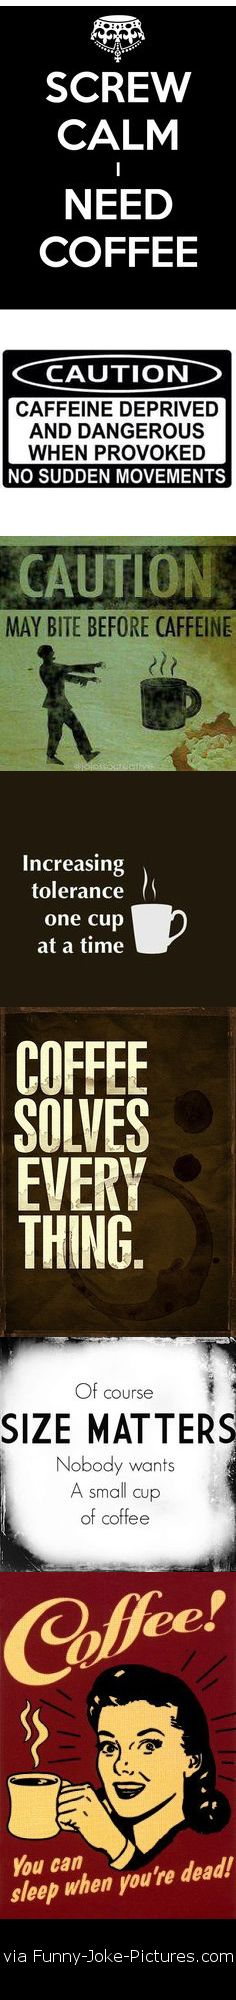 Funny Coffee Sign Collection Picture Strip #CoffeeHumor